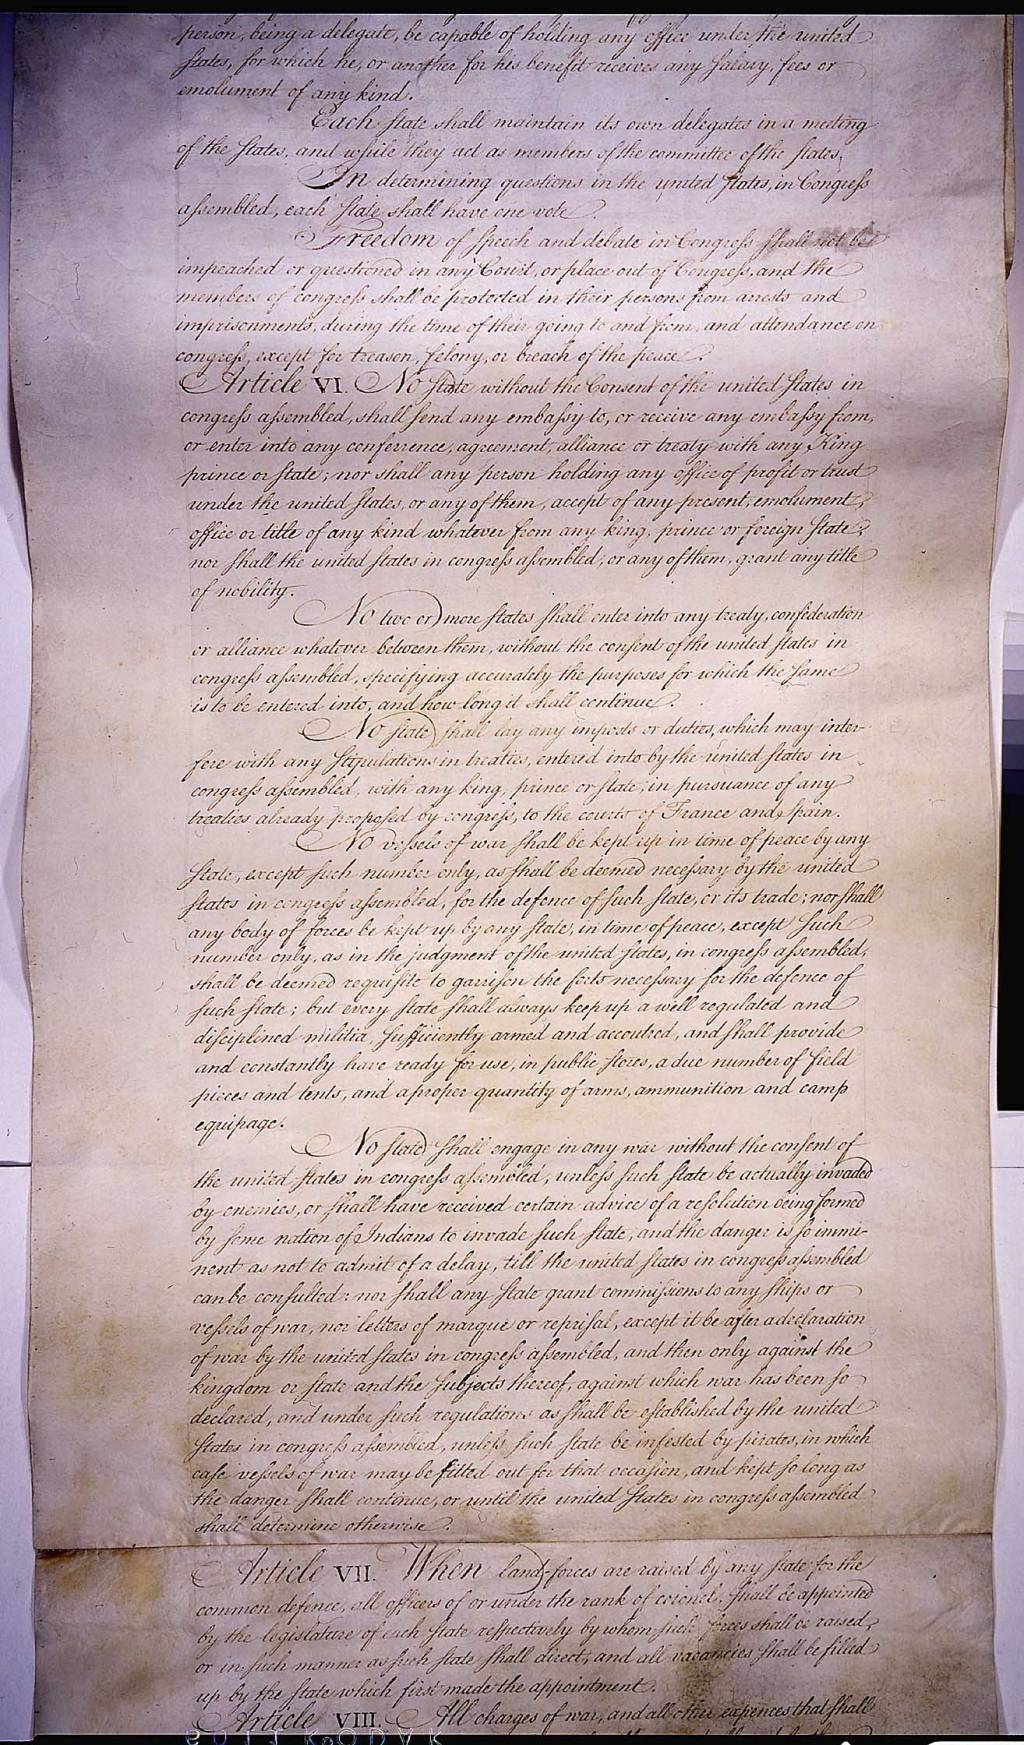 what problems were addressed in the articles of confederation